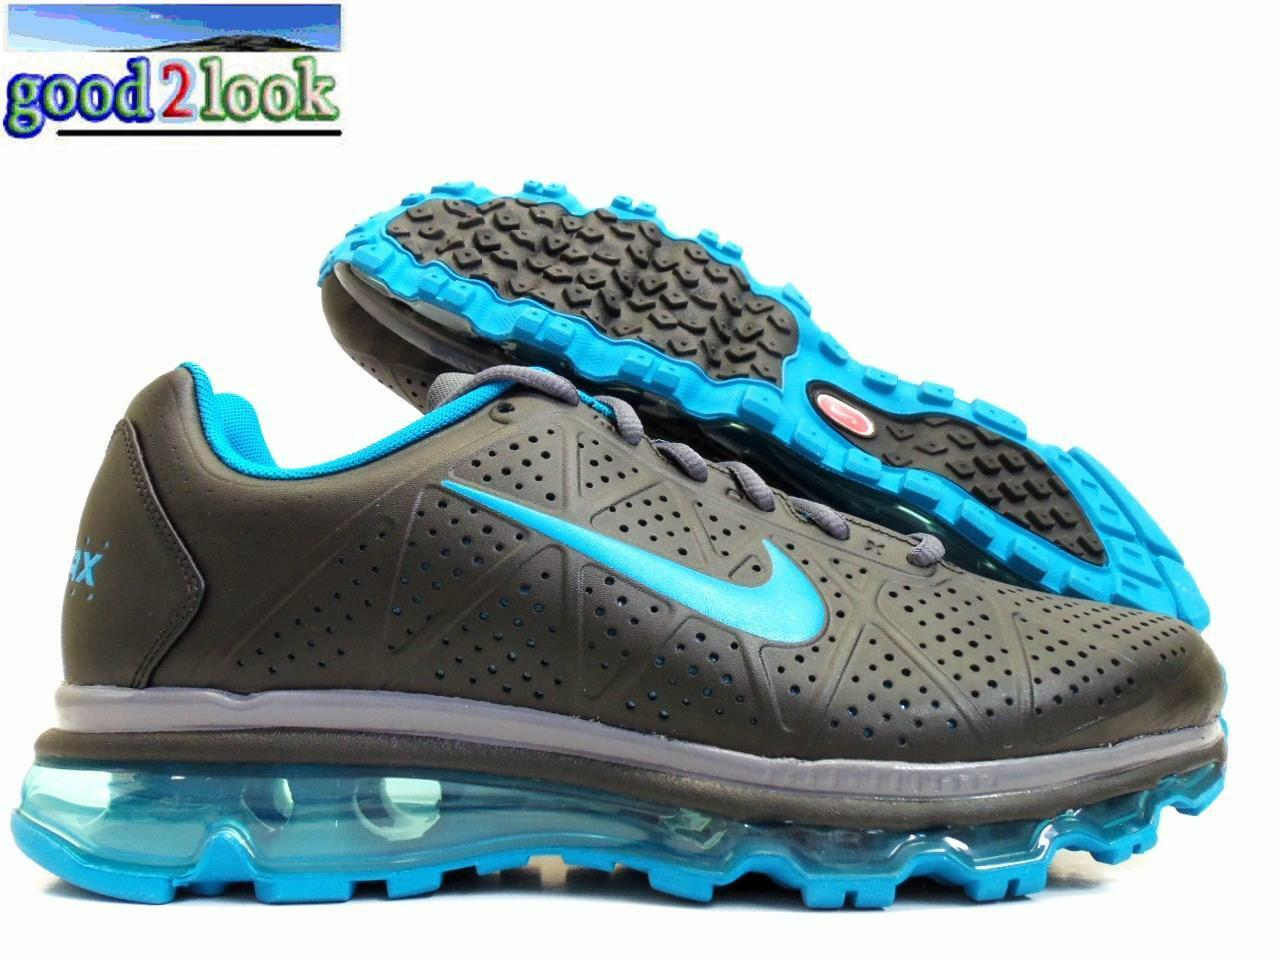 NIKE AIR MAX+ 2011 2011 MAX+ LEA BLACK/NEO TURQ SIZE WOMEN'S 11.5/MEN 10 [456326-011] 2de67a